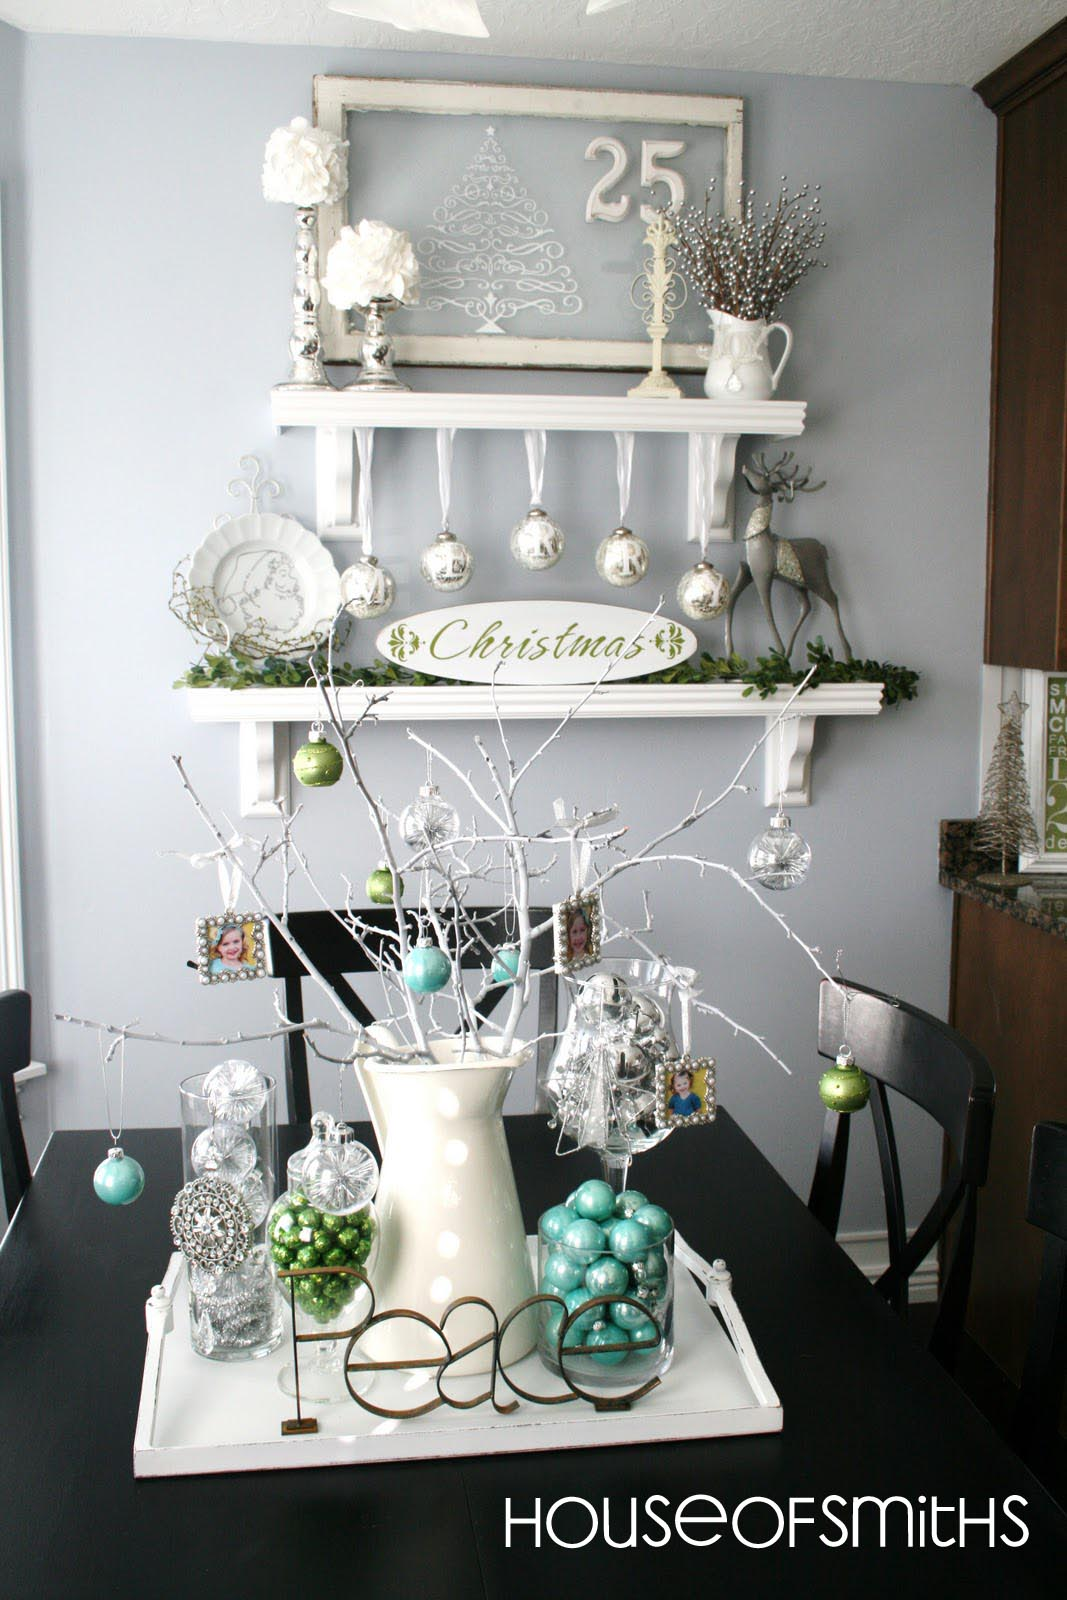 Blue, Green, White And Silver Christmas Decorating Ideas. Pinterest Christmas Decorations With Mason Jars. Christmas Light Up Present Decorations Uk. Nautical Christmas Decorations On Sale. Christmas Decorations Of England. Christmas Ideas For Classroom Treats. Christmas Tree Decorations Wholesale. Elegant Christmas Decorations For Outside. Best Black Friday Deals On Christmas Decorations